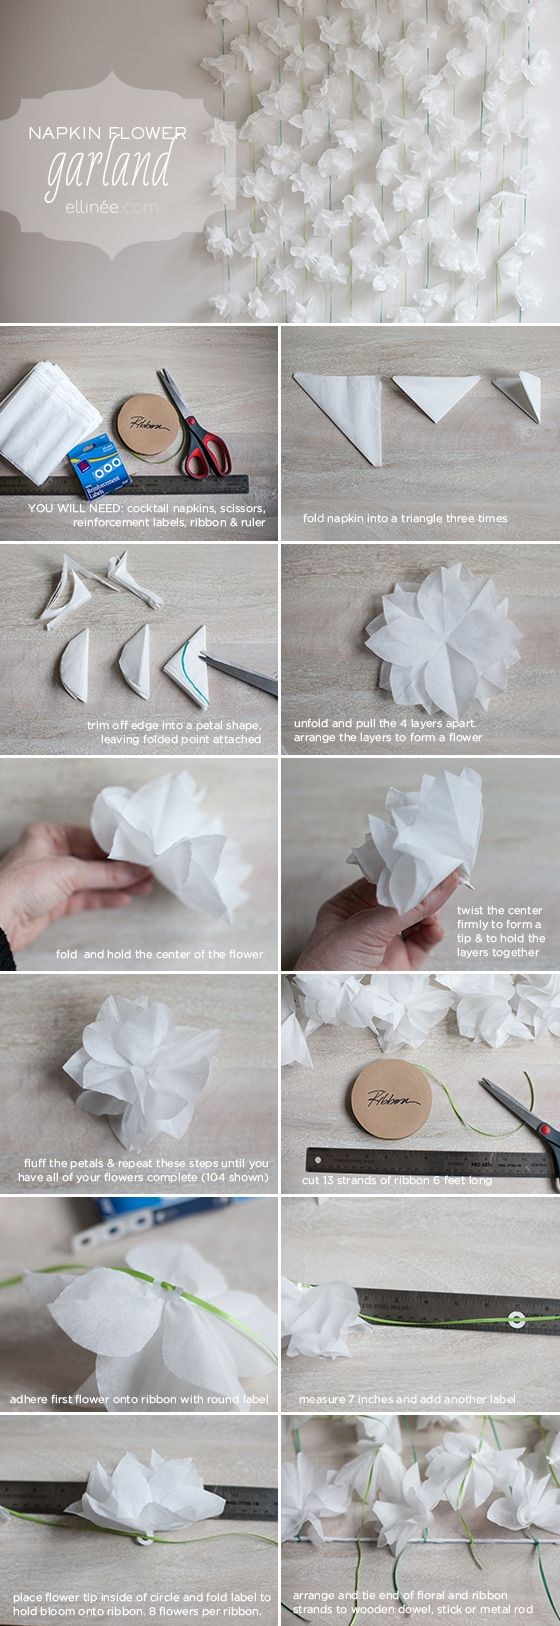 DIY Paper Napkin Flower Garland Tutorial. This looks super easy!